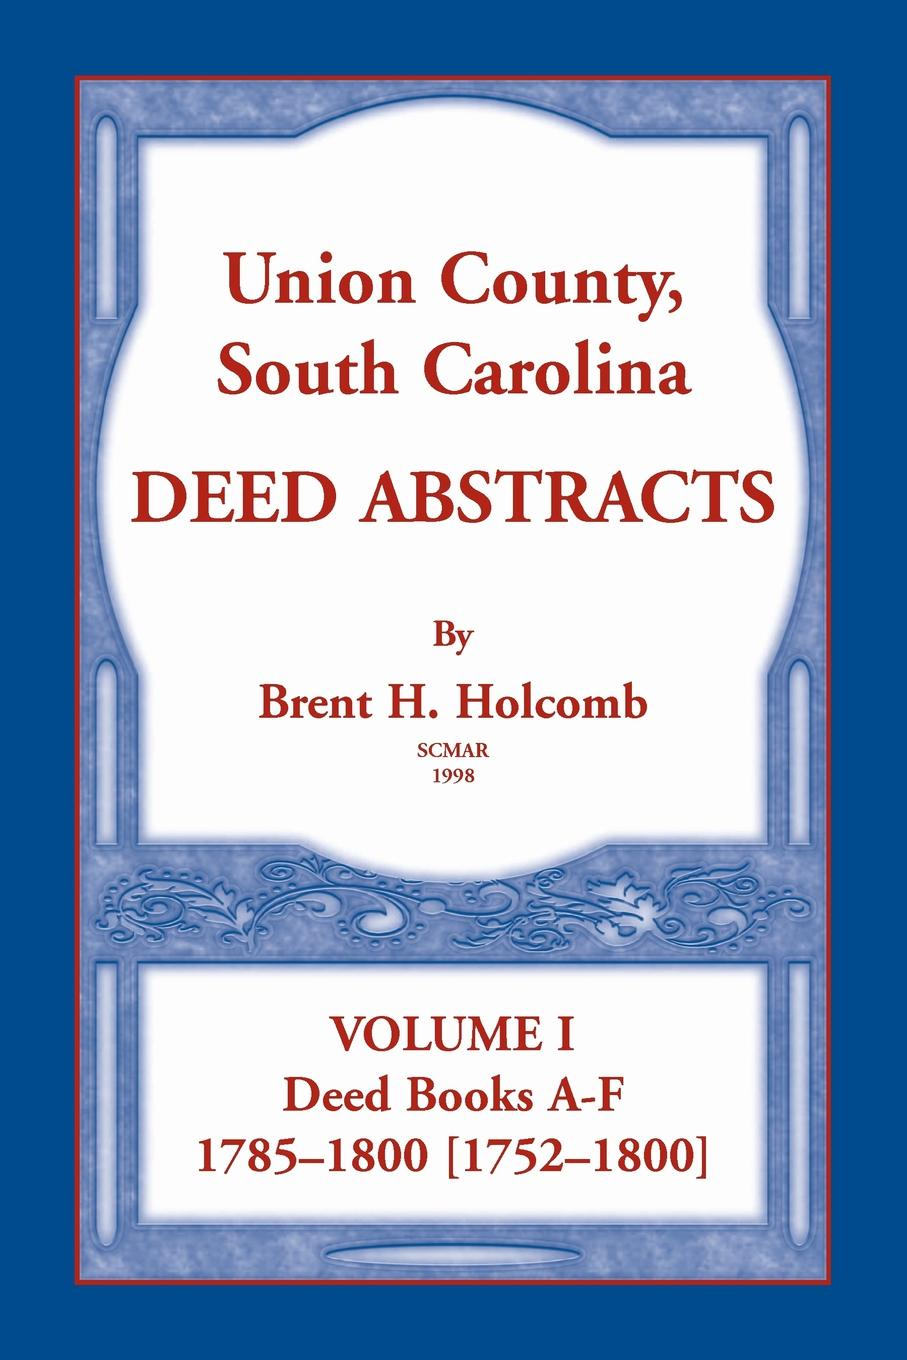 Brent Holcomb Union County, South Carolina Deed Abstracts, Volume I. Books A-F. 1785-1800 .1752-1800.